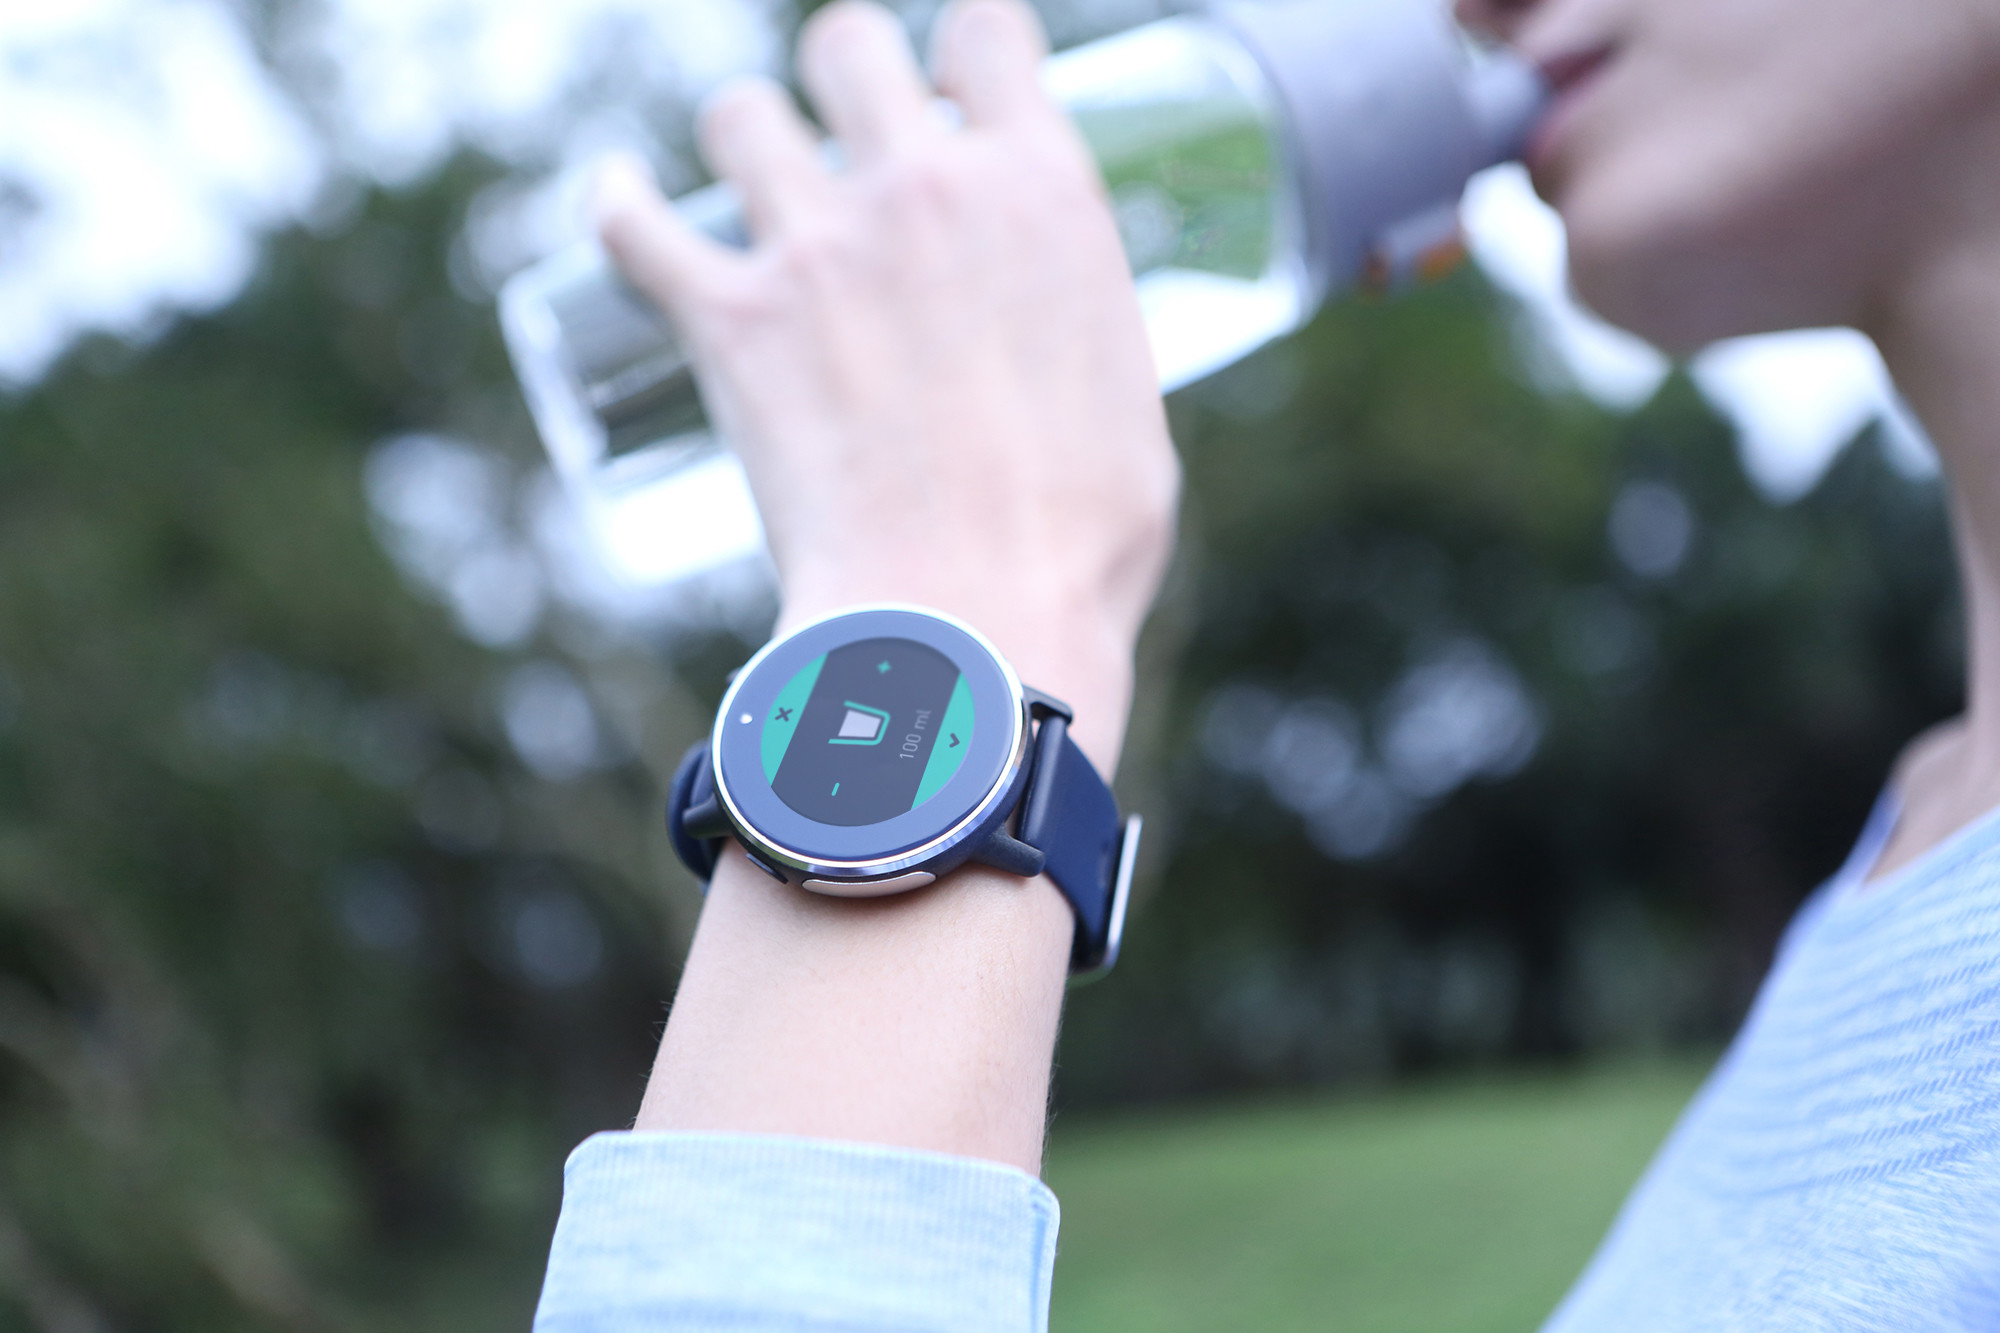 Acer Leap Ware smartwatch is a fitness wearable for iOS and Android